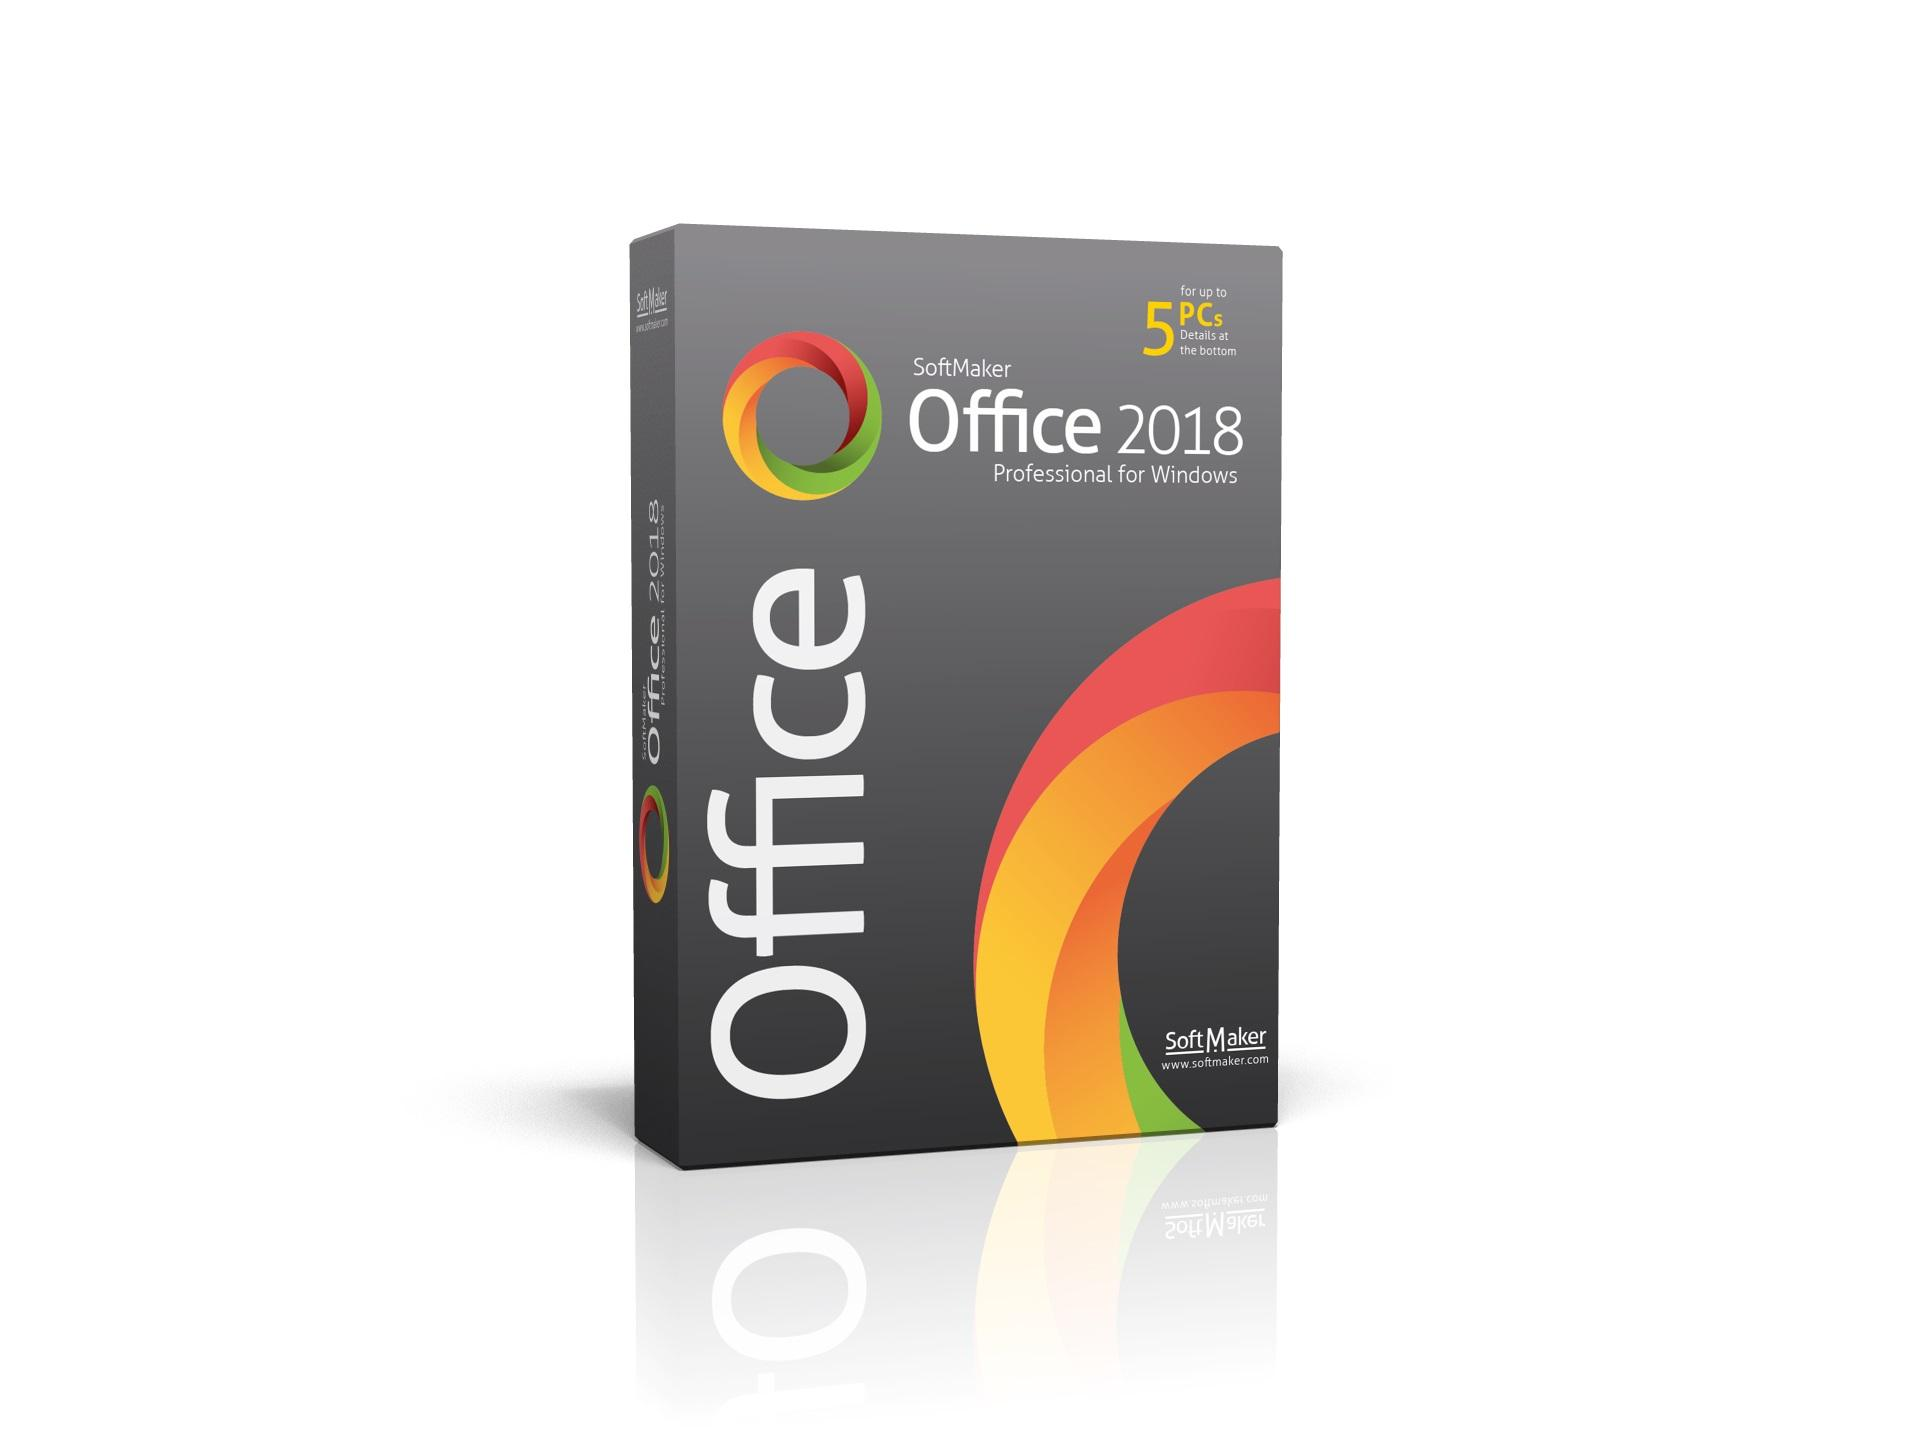 SoftMaker Office Proffesional  2018 for Windows